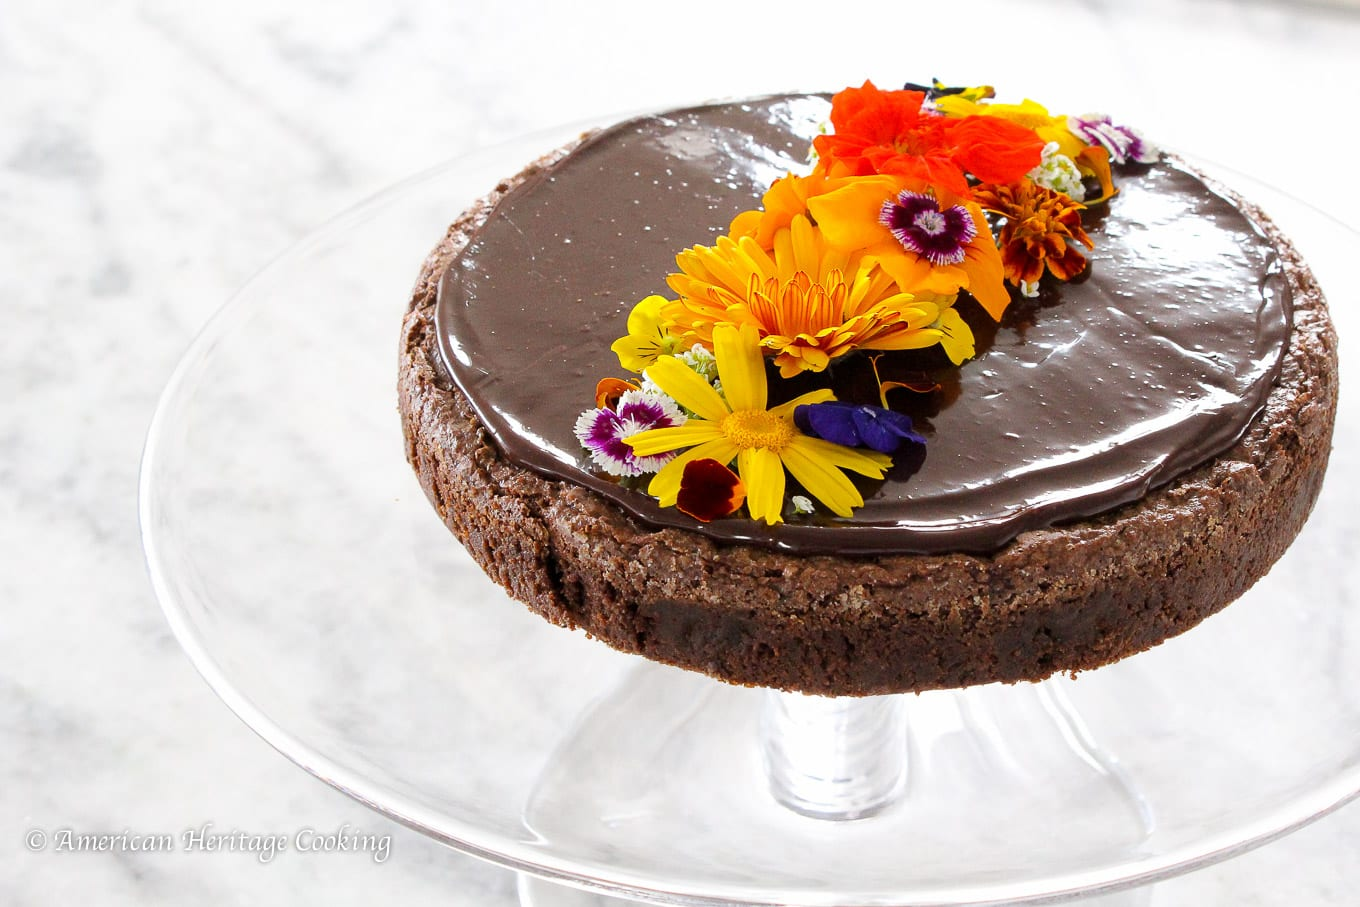 This Hazelnut flourless chocolate cake is rich and chocolatey